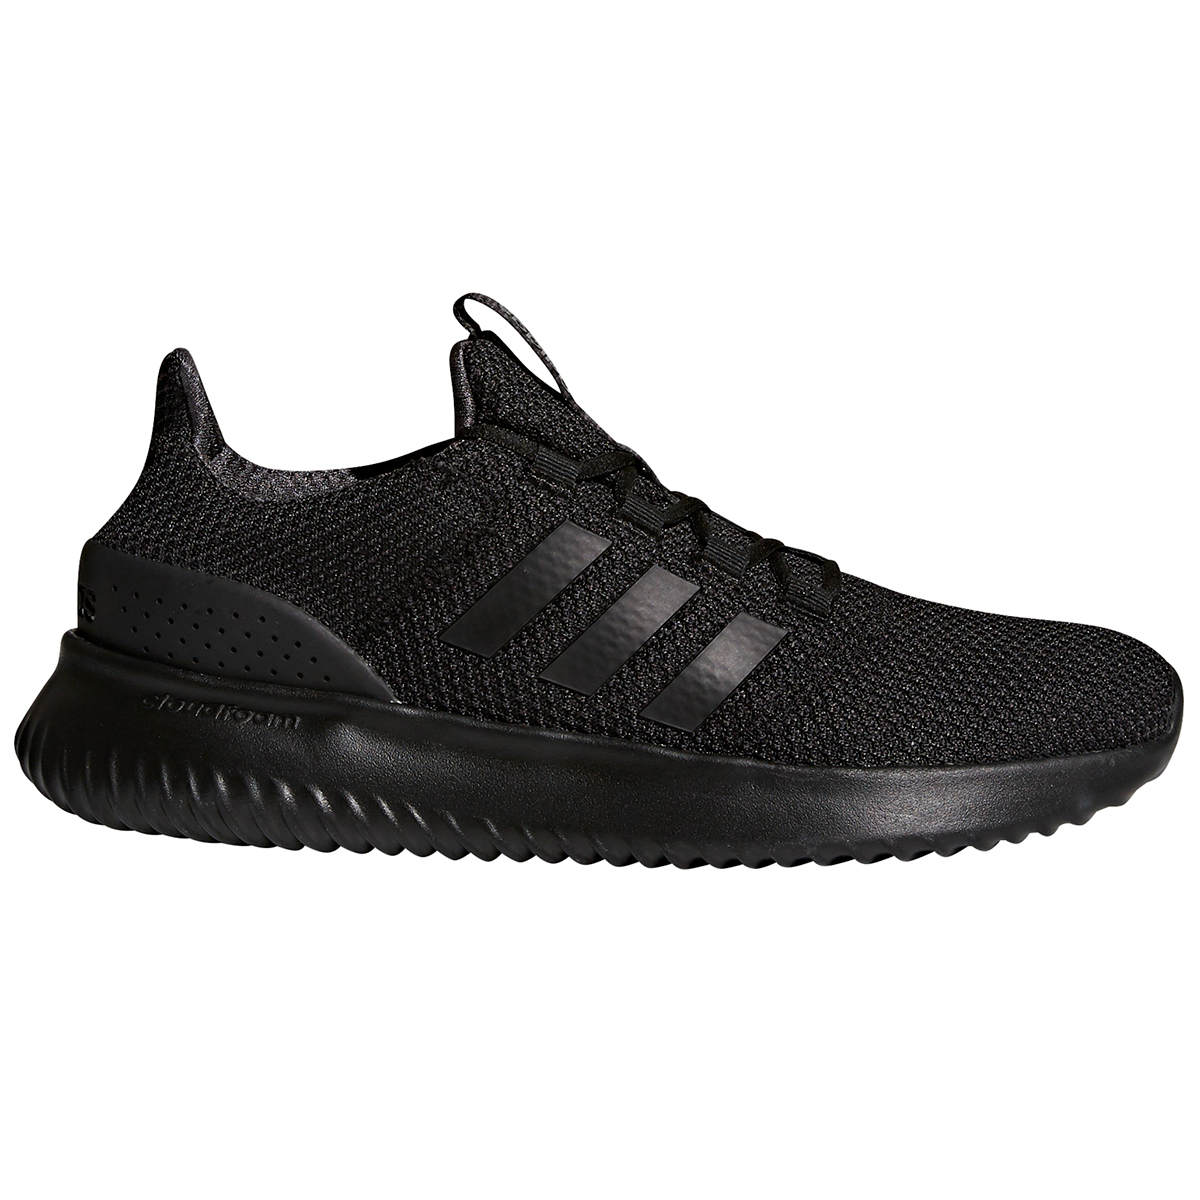 Adidas Men's Cloudfoam Ultimate Running Shoes - Black, 11.5